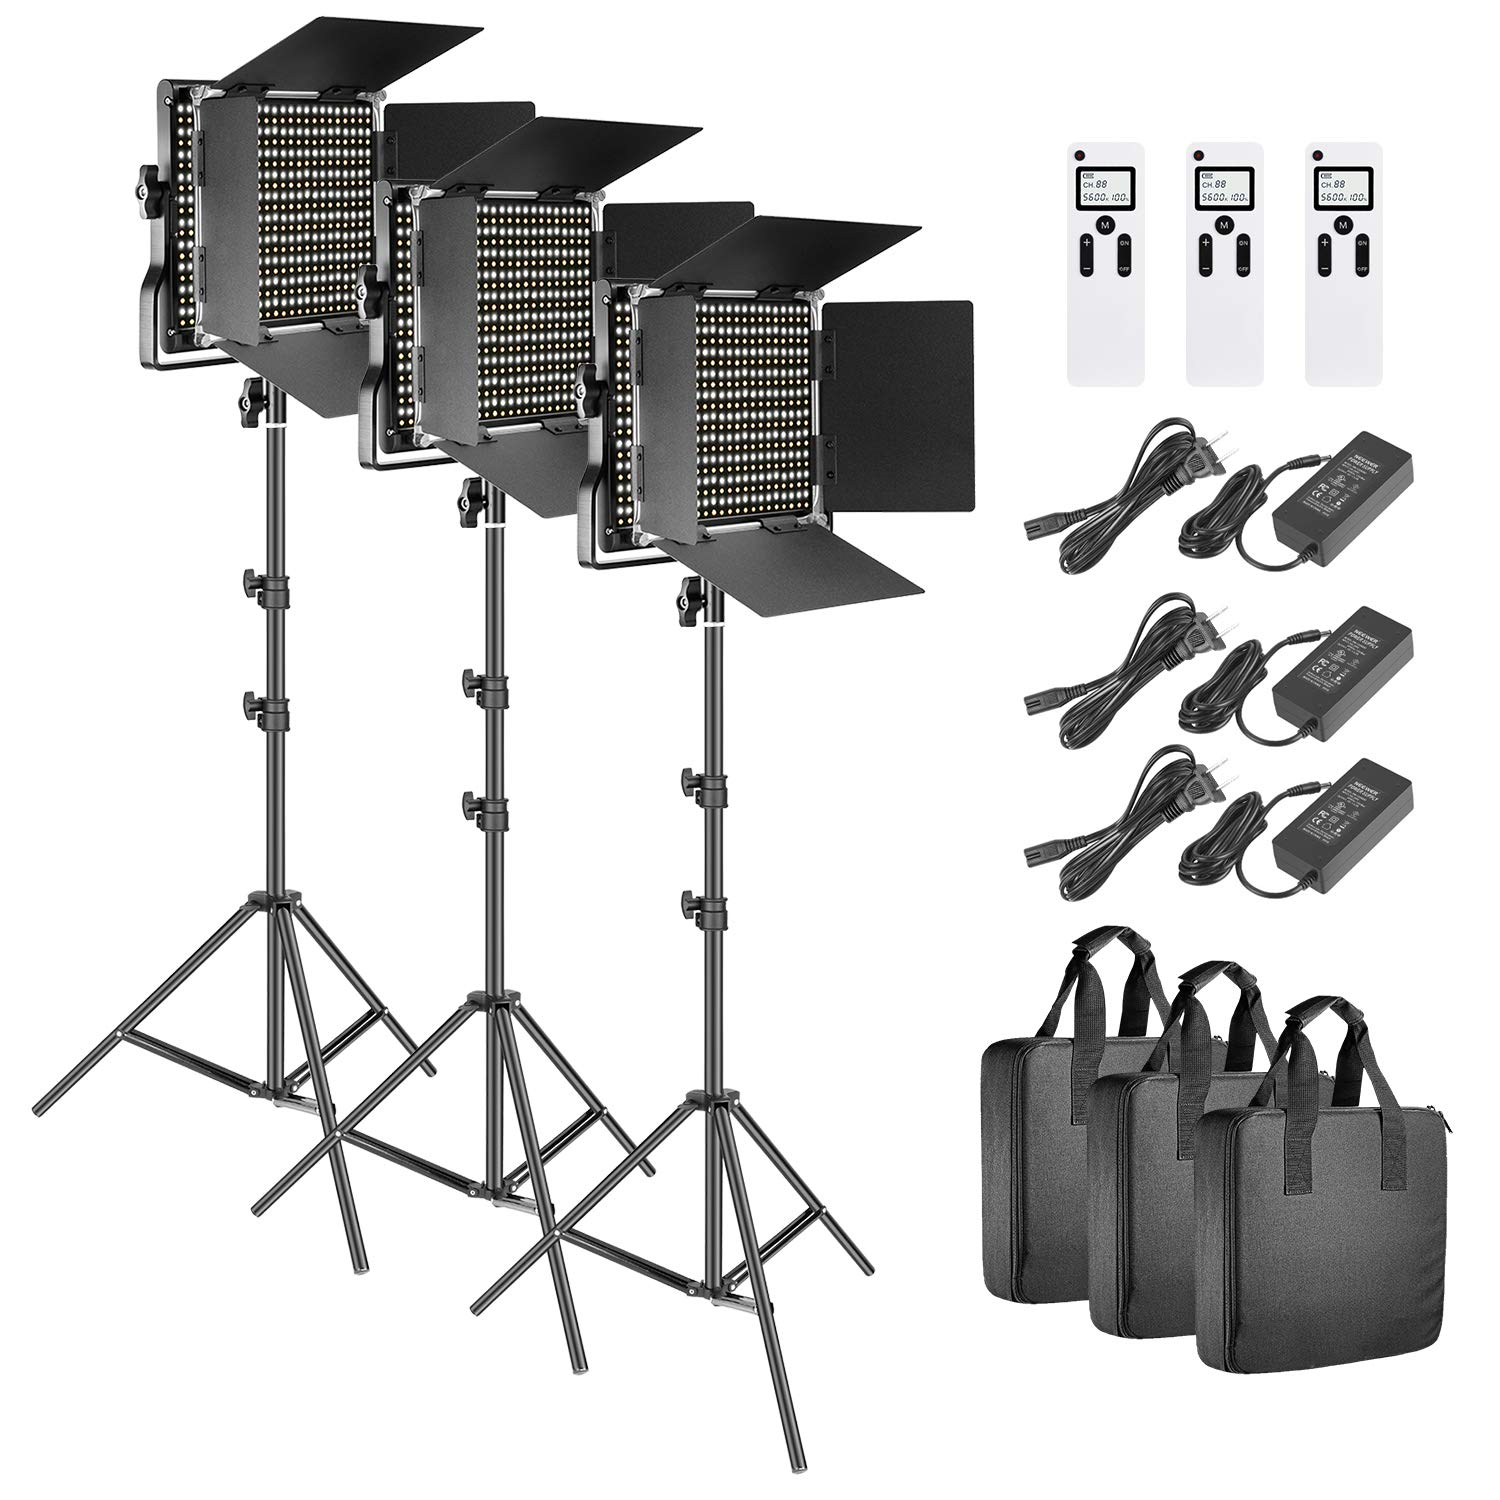 Neewer 3 Packs Advanced 2.4G 660 LED Video Light Photography Lighting Kit, Dimmable Bi-Color LED Panel with LCD Screen, 2.4G Wireless Remote and Light Stand for Portrait Product Photography by Neewer